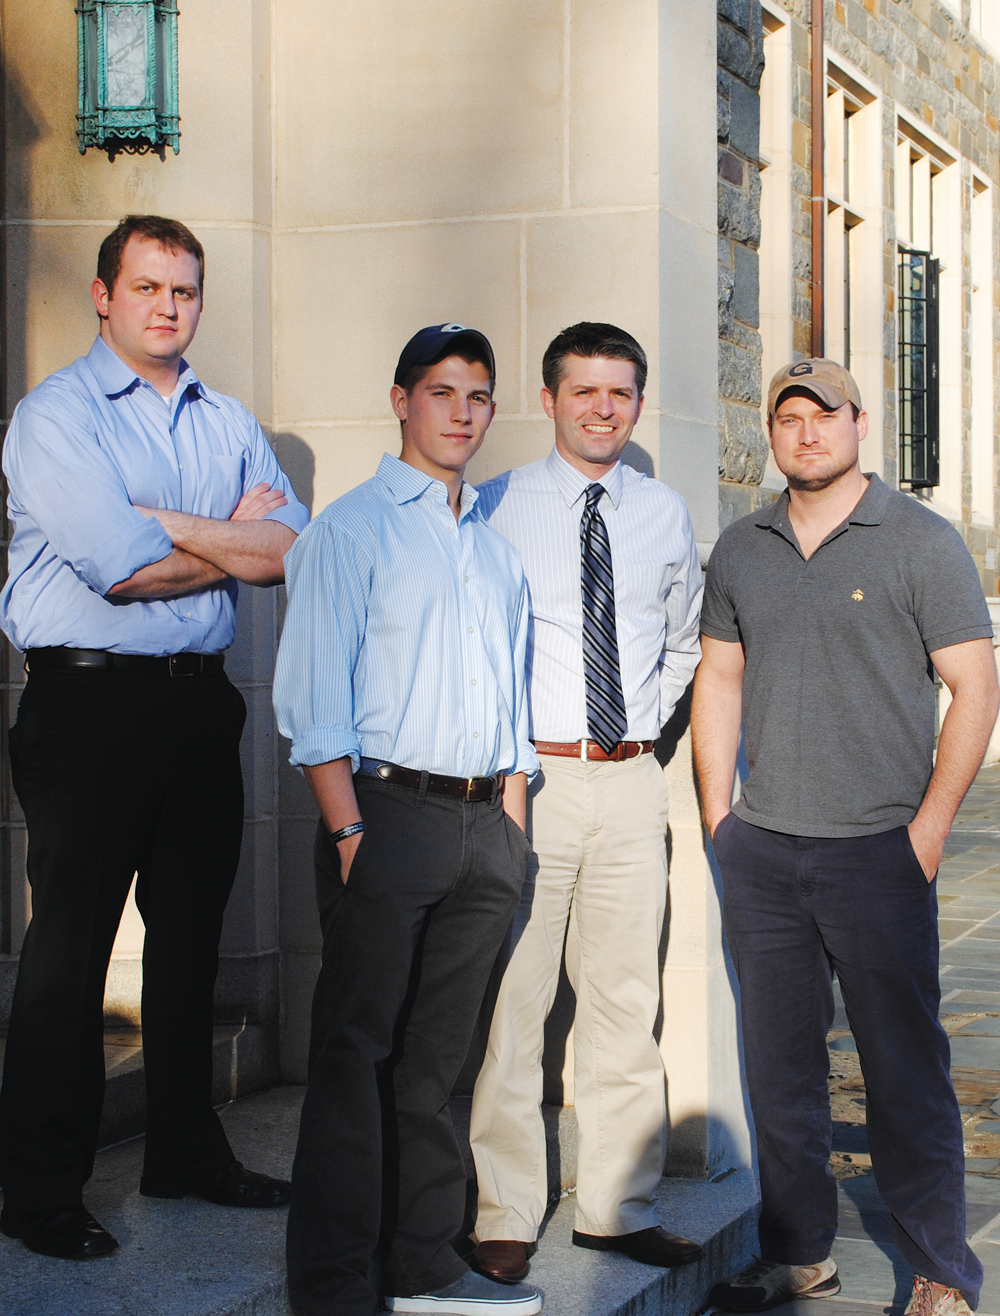 MICHELLE CASSIDY/THE HOYA Alex Horton, T.M. Gibbons-Neff, David Shearman and Colby Howard are working to improve on-campus resources for student veterans.